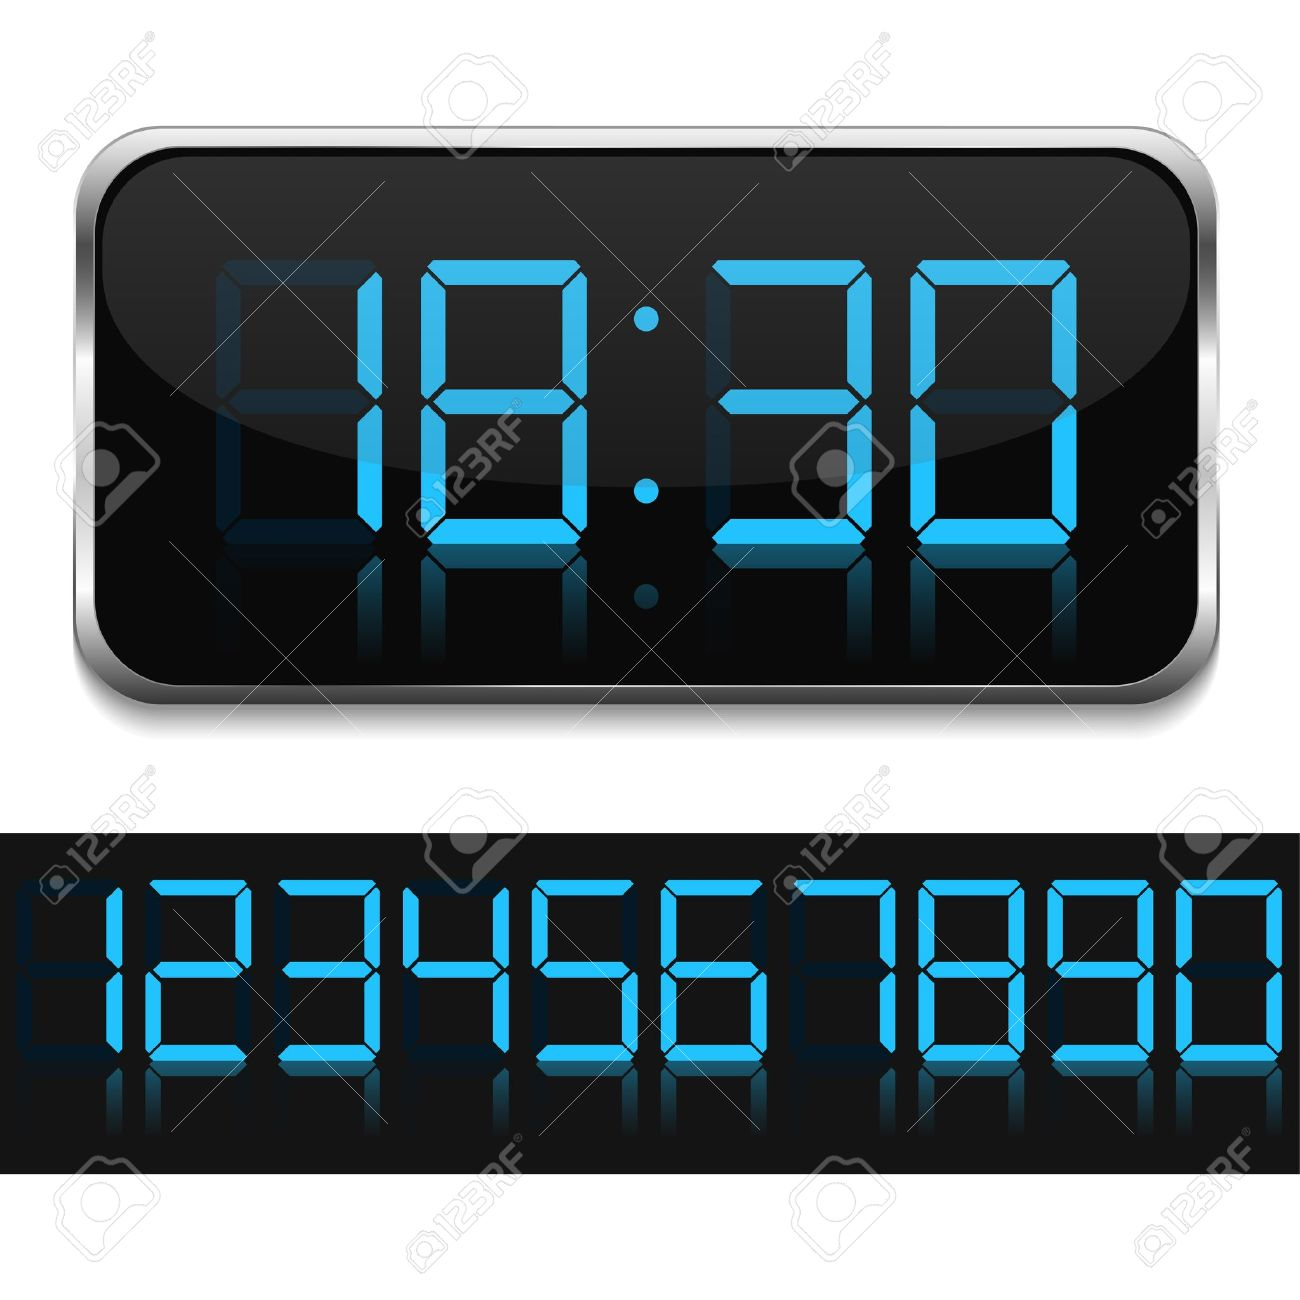 108,195 Electronic Display Stock Vector Illustration And Royalty.